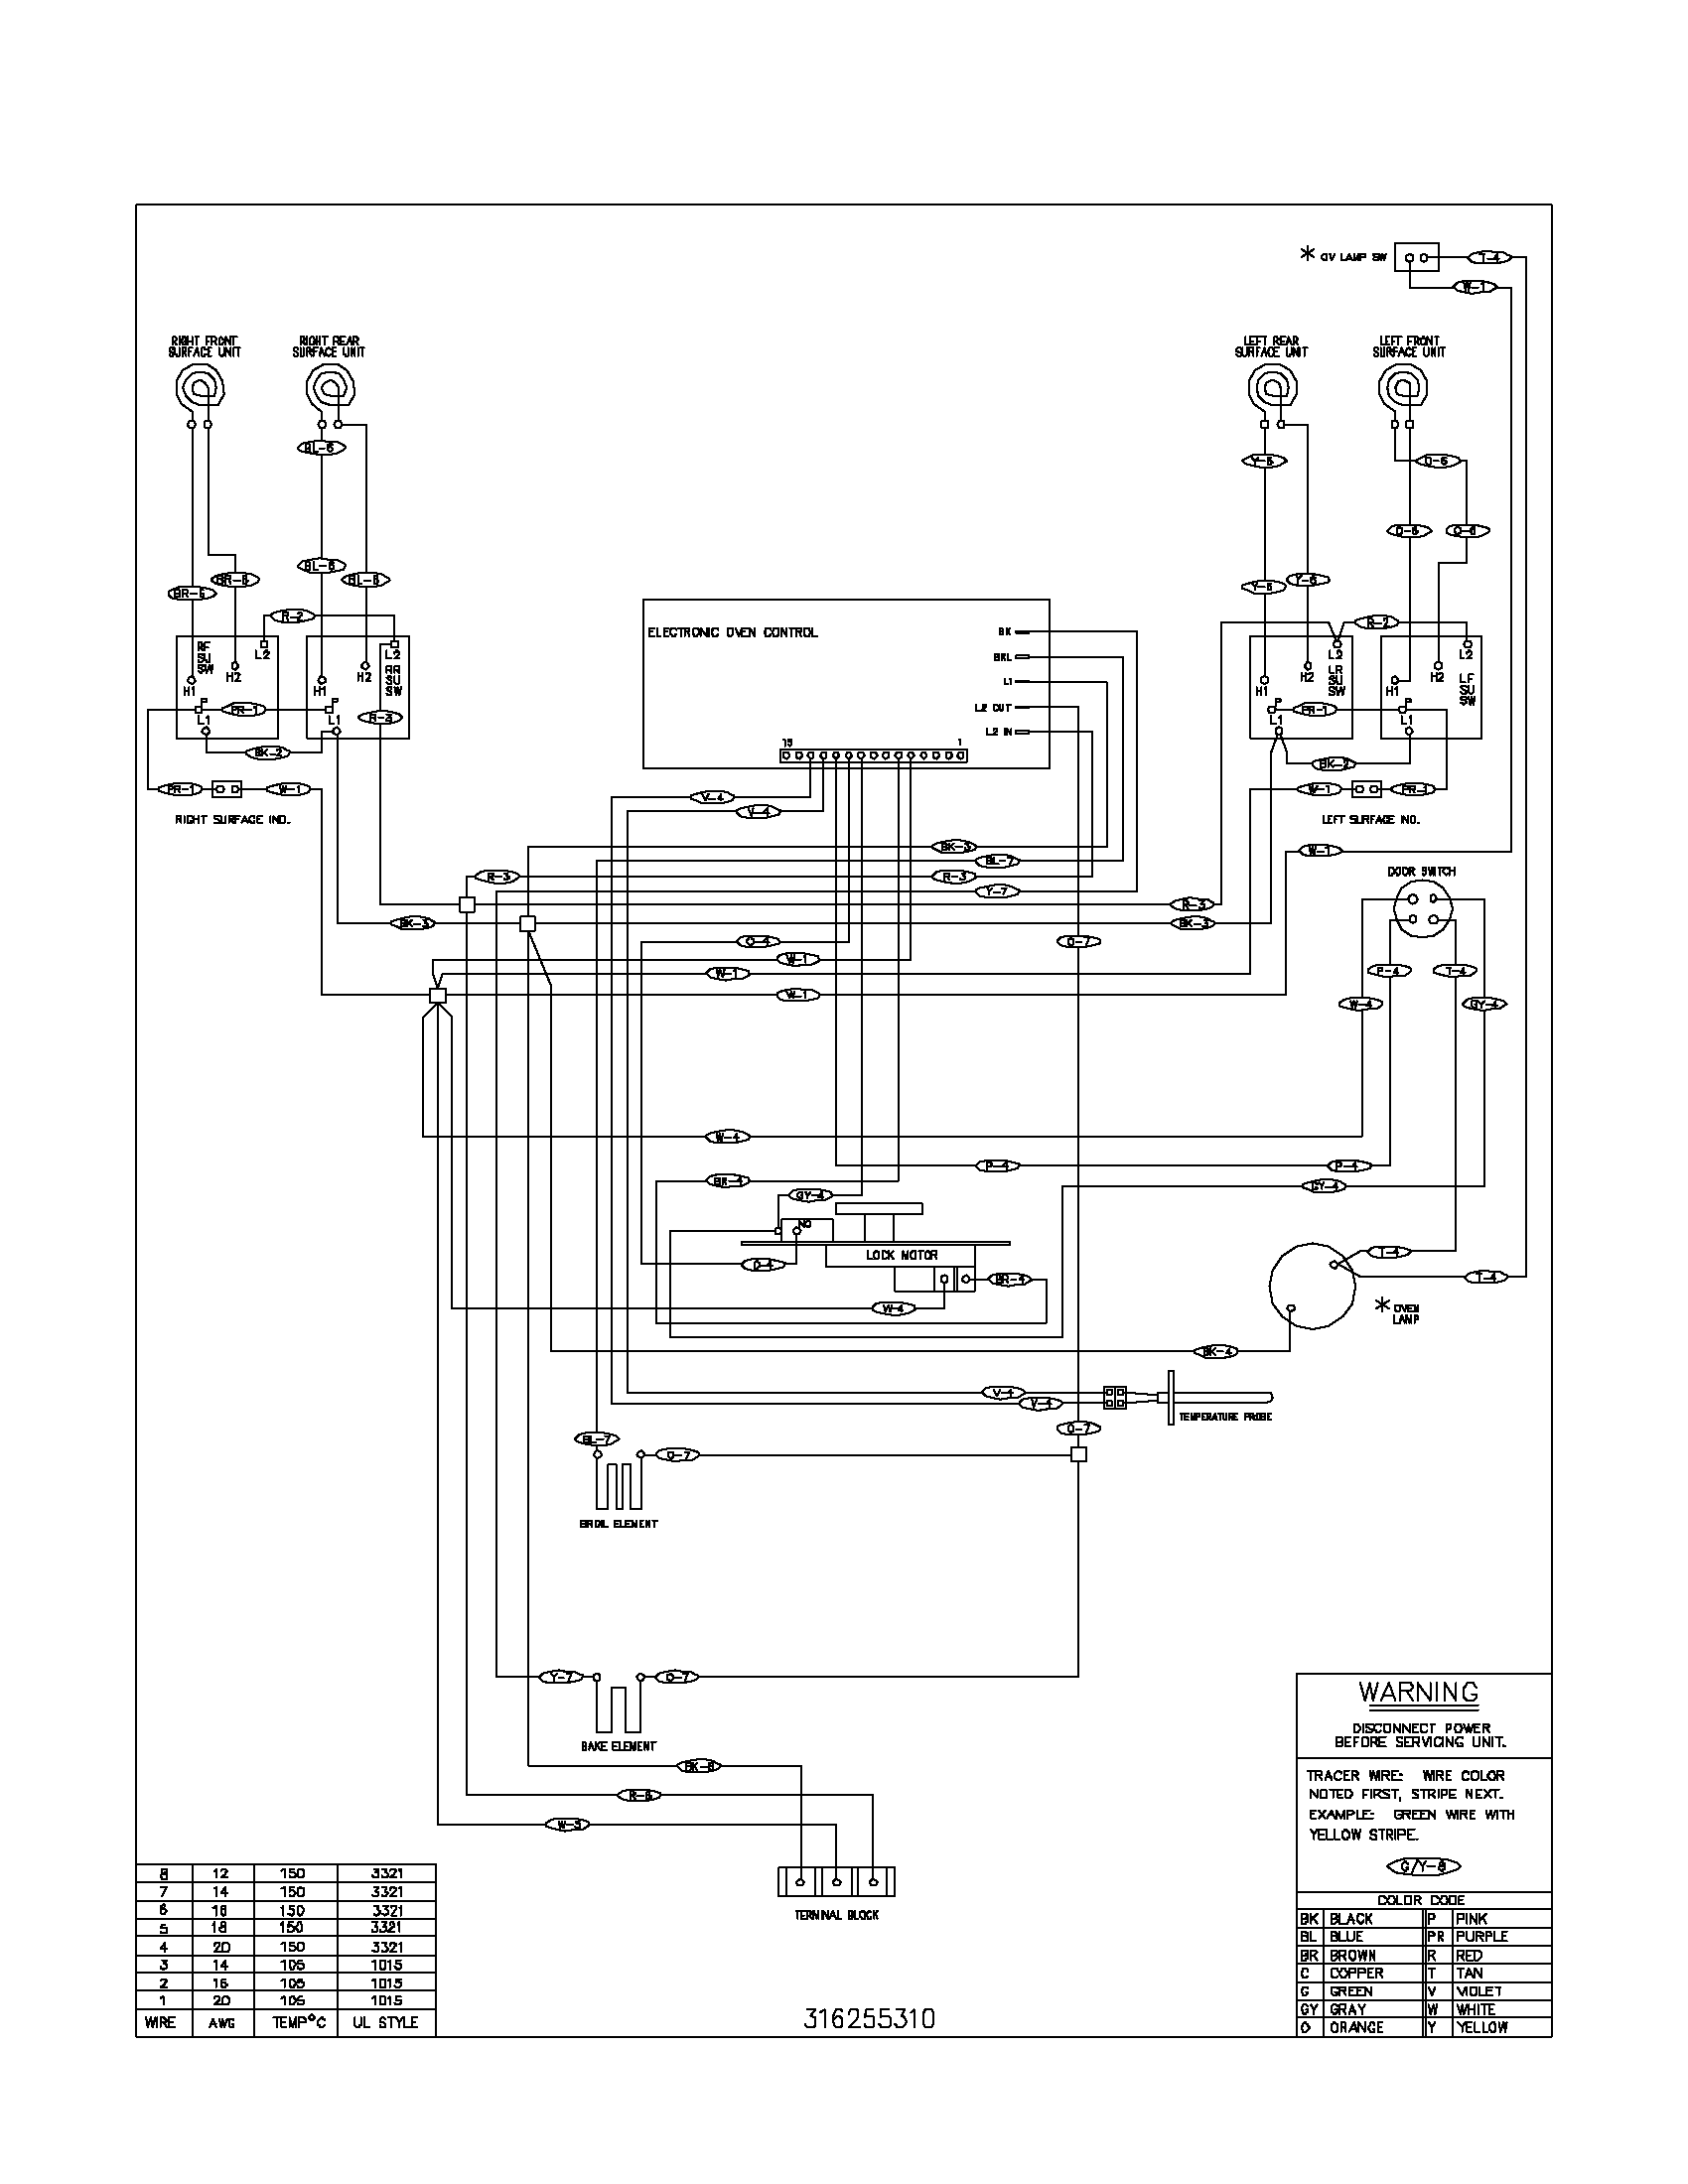 wiring diagram for an electric range with Appliance on Pre Heated solar water heater besides Product info also Appliance moreover Index together with Dc Motor Speed Control Circuit Diagram Using 555 Timer.